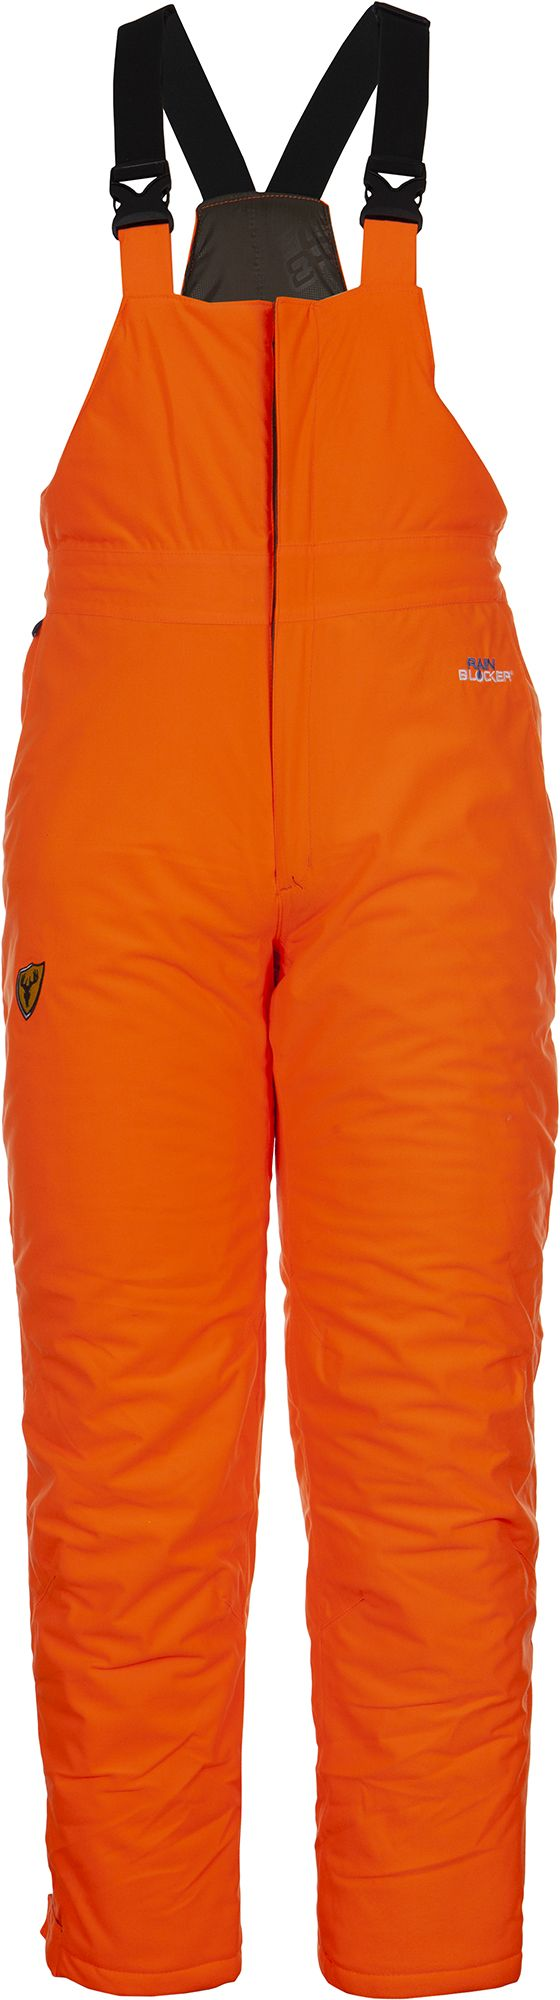 Blocker Outdoors Men's Drencher Insulated Bib, Size: Large, Blaze Orange thumbnail